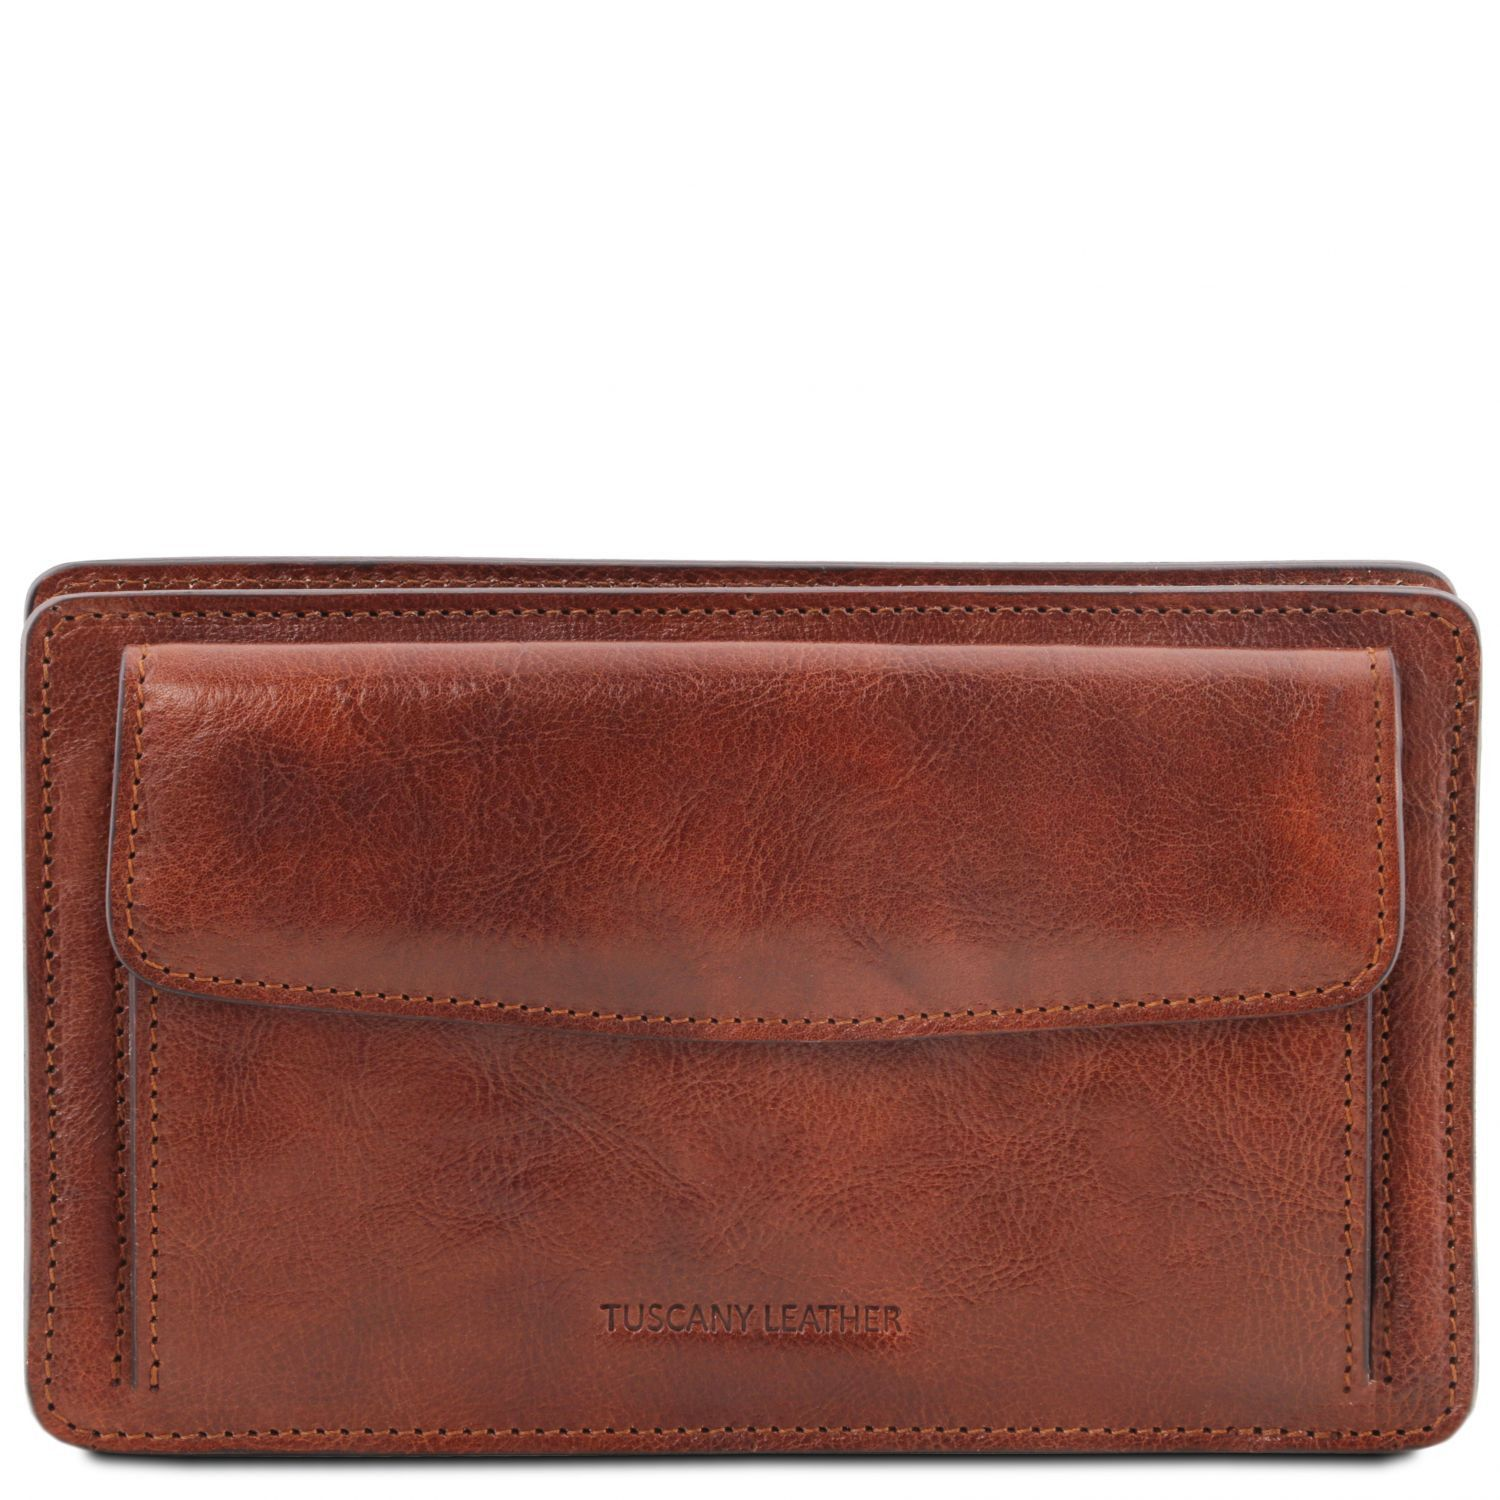 Tuscany Leather 'Denis' Exclusive Leather Handy Wrist Bag For Man (TL141445) Handbag Tuscany Leather Brown